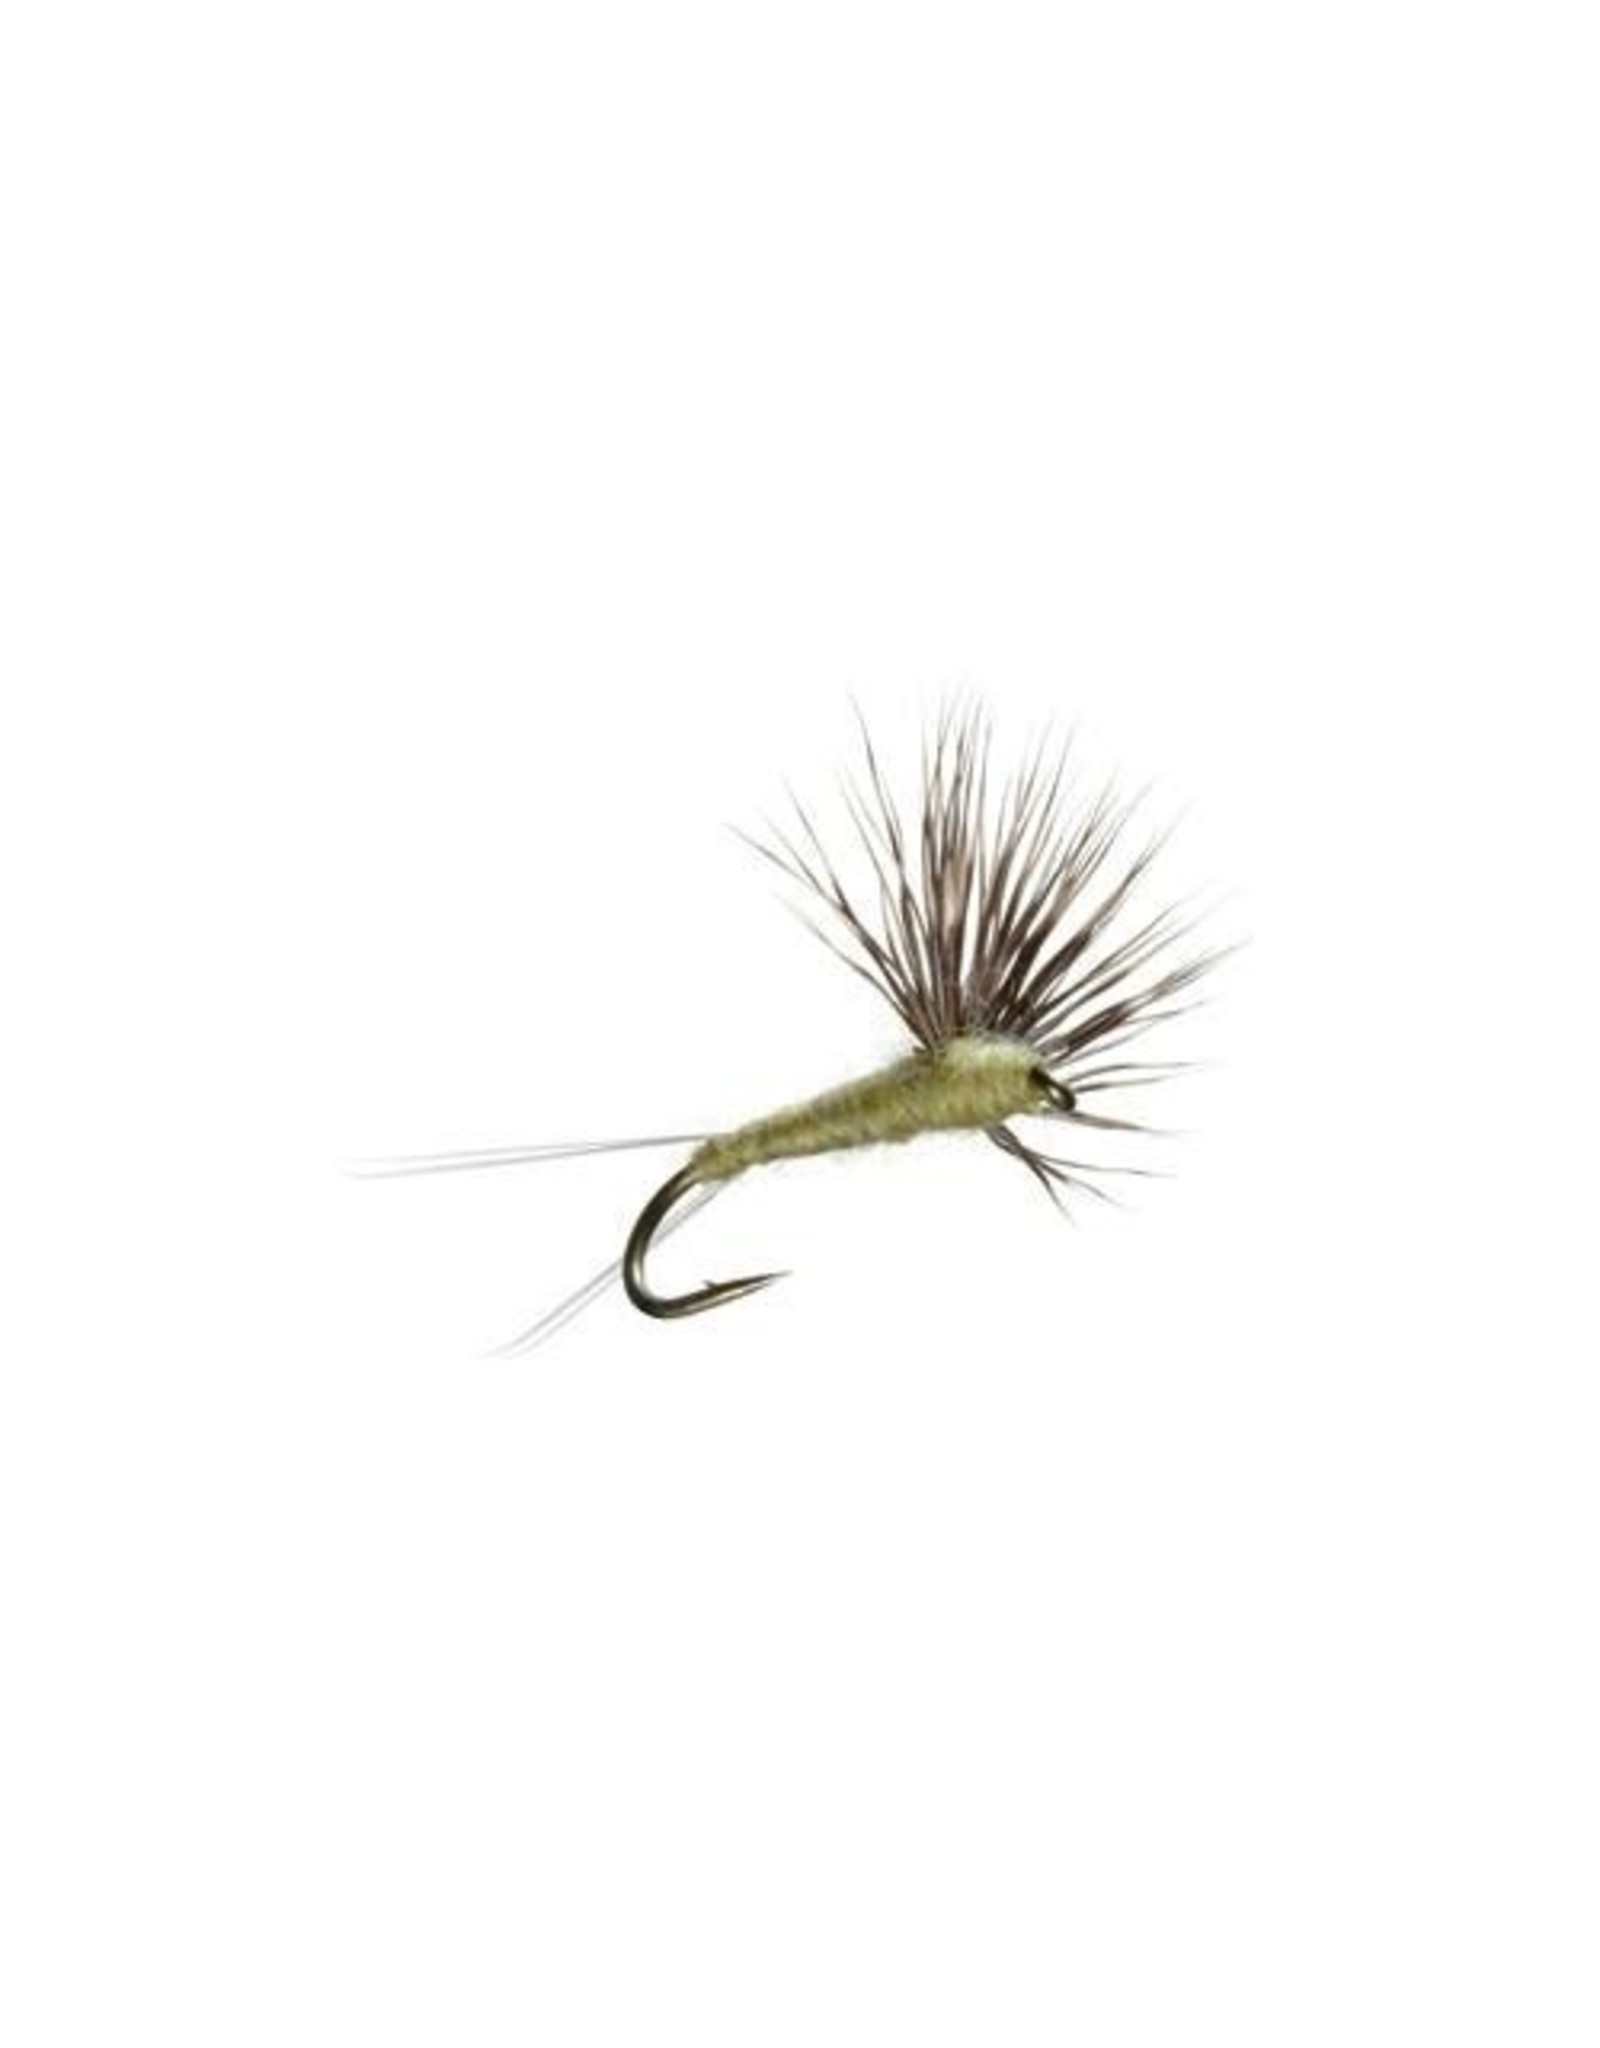 Umpqua Comparadun (3 Pack)